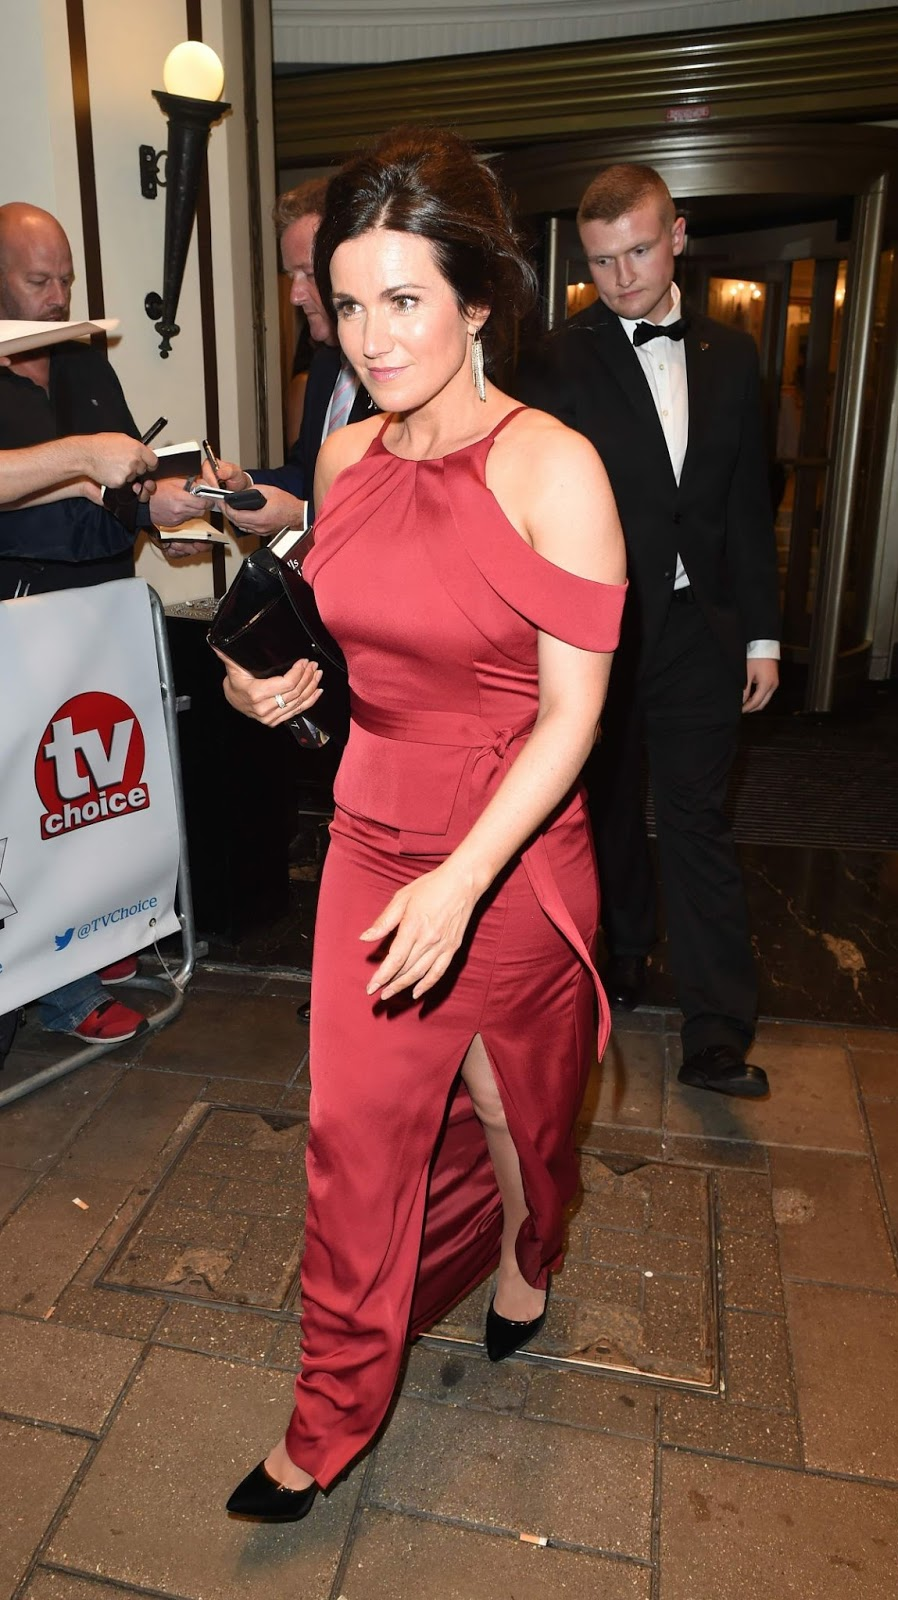 HQ Photos of 'BBC Breakfast' presenter Susanna Reid at TV Choice Awards in London